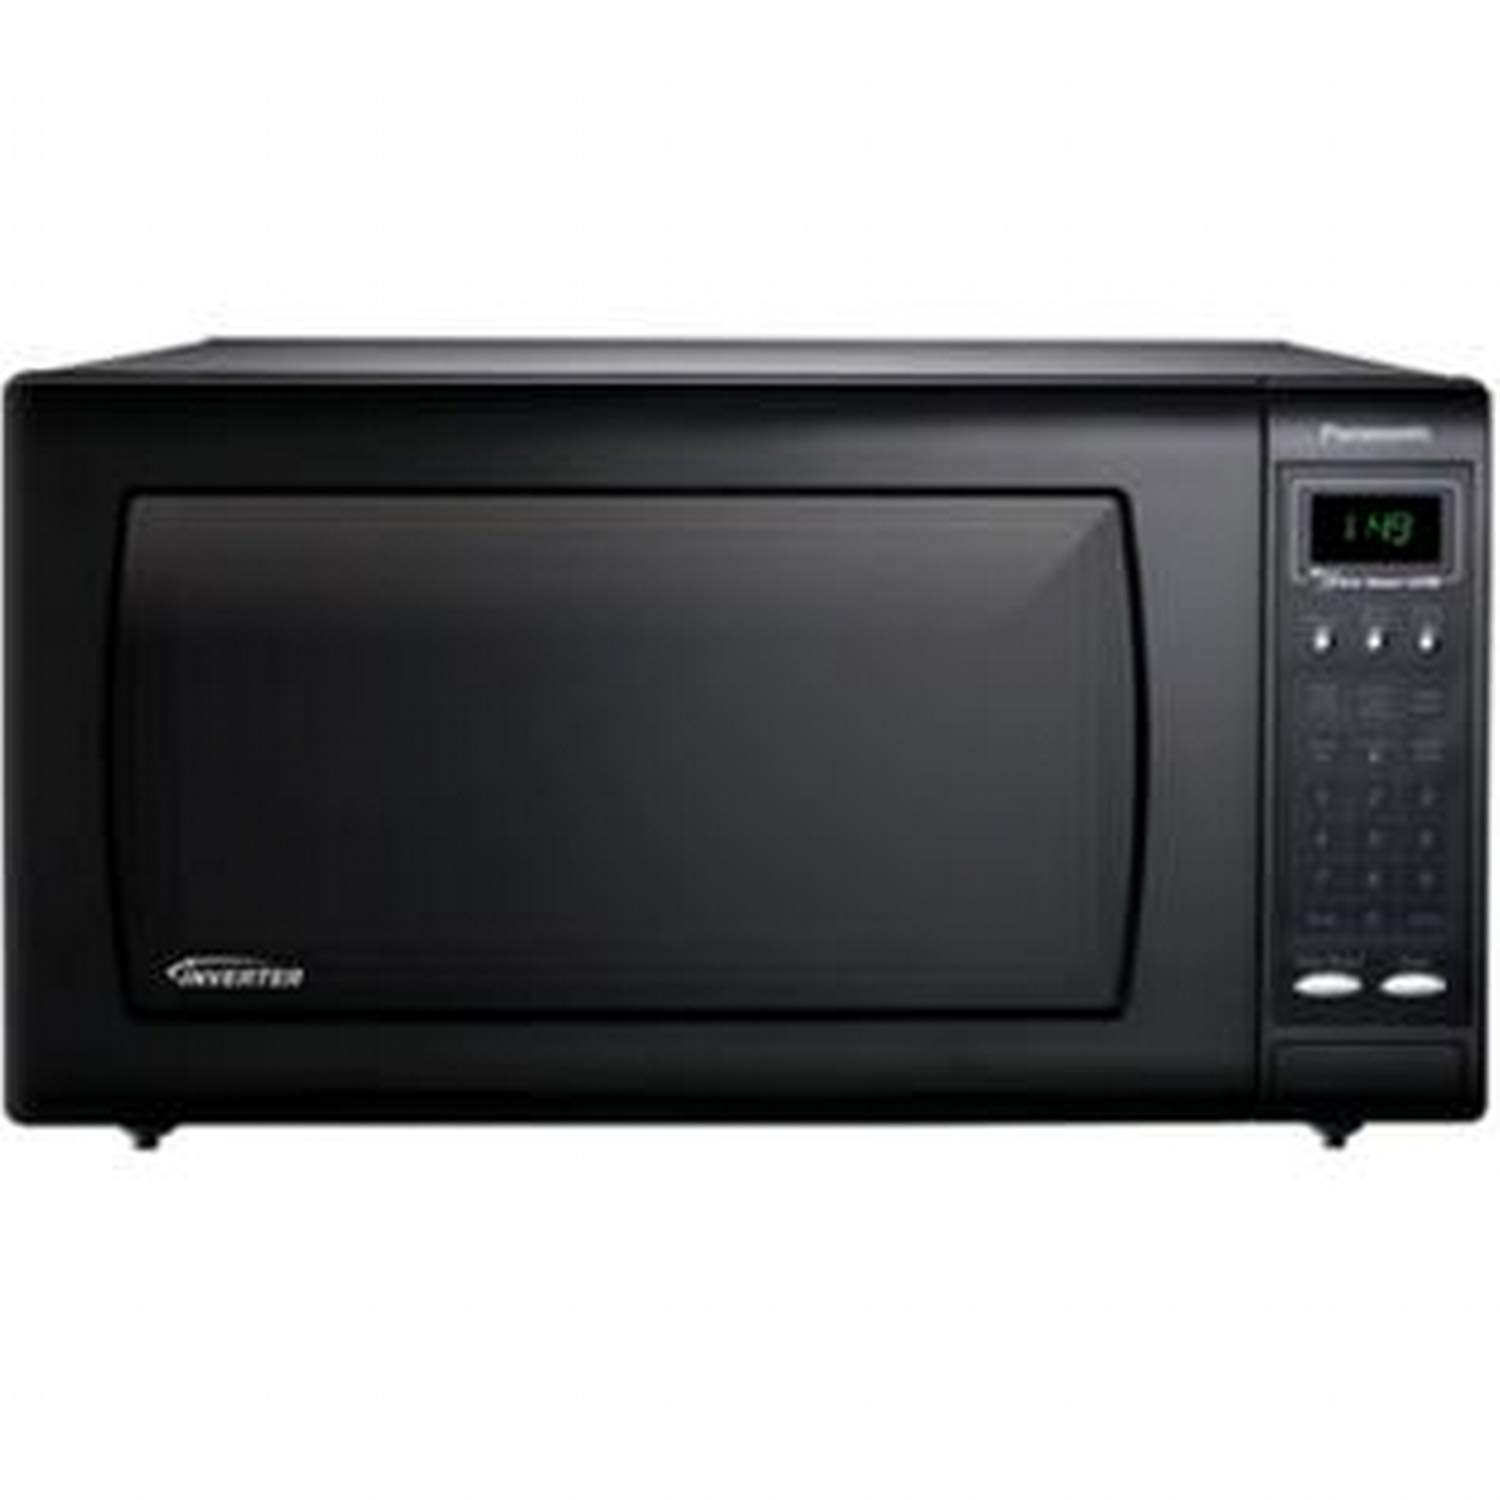 Panasonic NN-H765BF 1.6 Cubic Foot Countertop Microwave Oven with Inverter Technology, Black